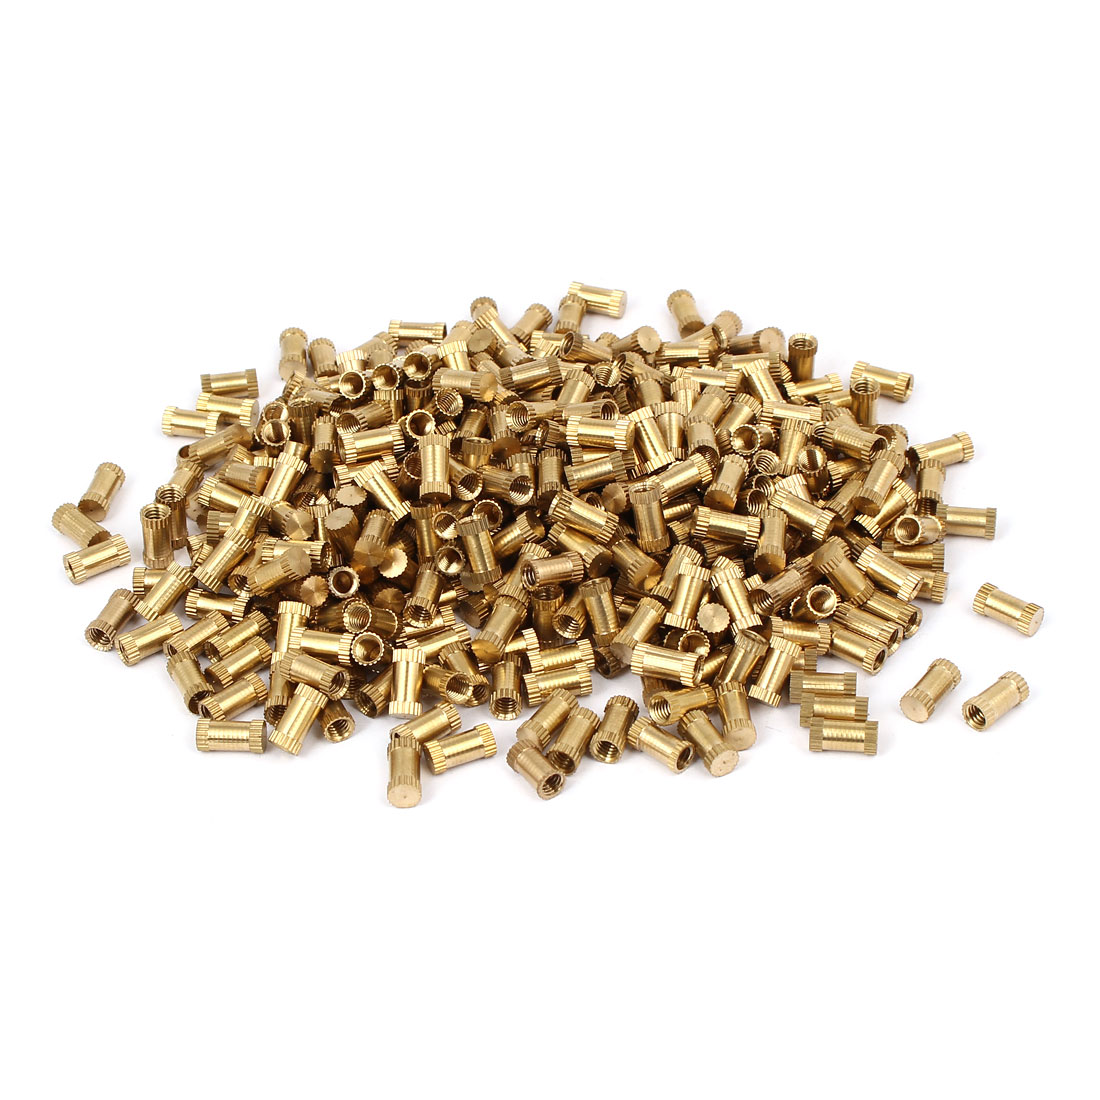 M4 x 10mm 5.3mm OD Brass Threaded Insert Embedment Knurled Thumb Nut 500PCS